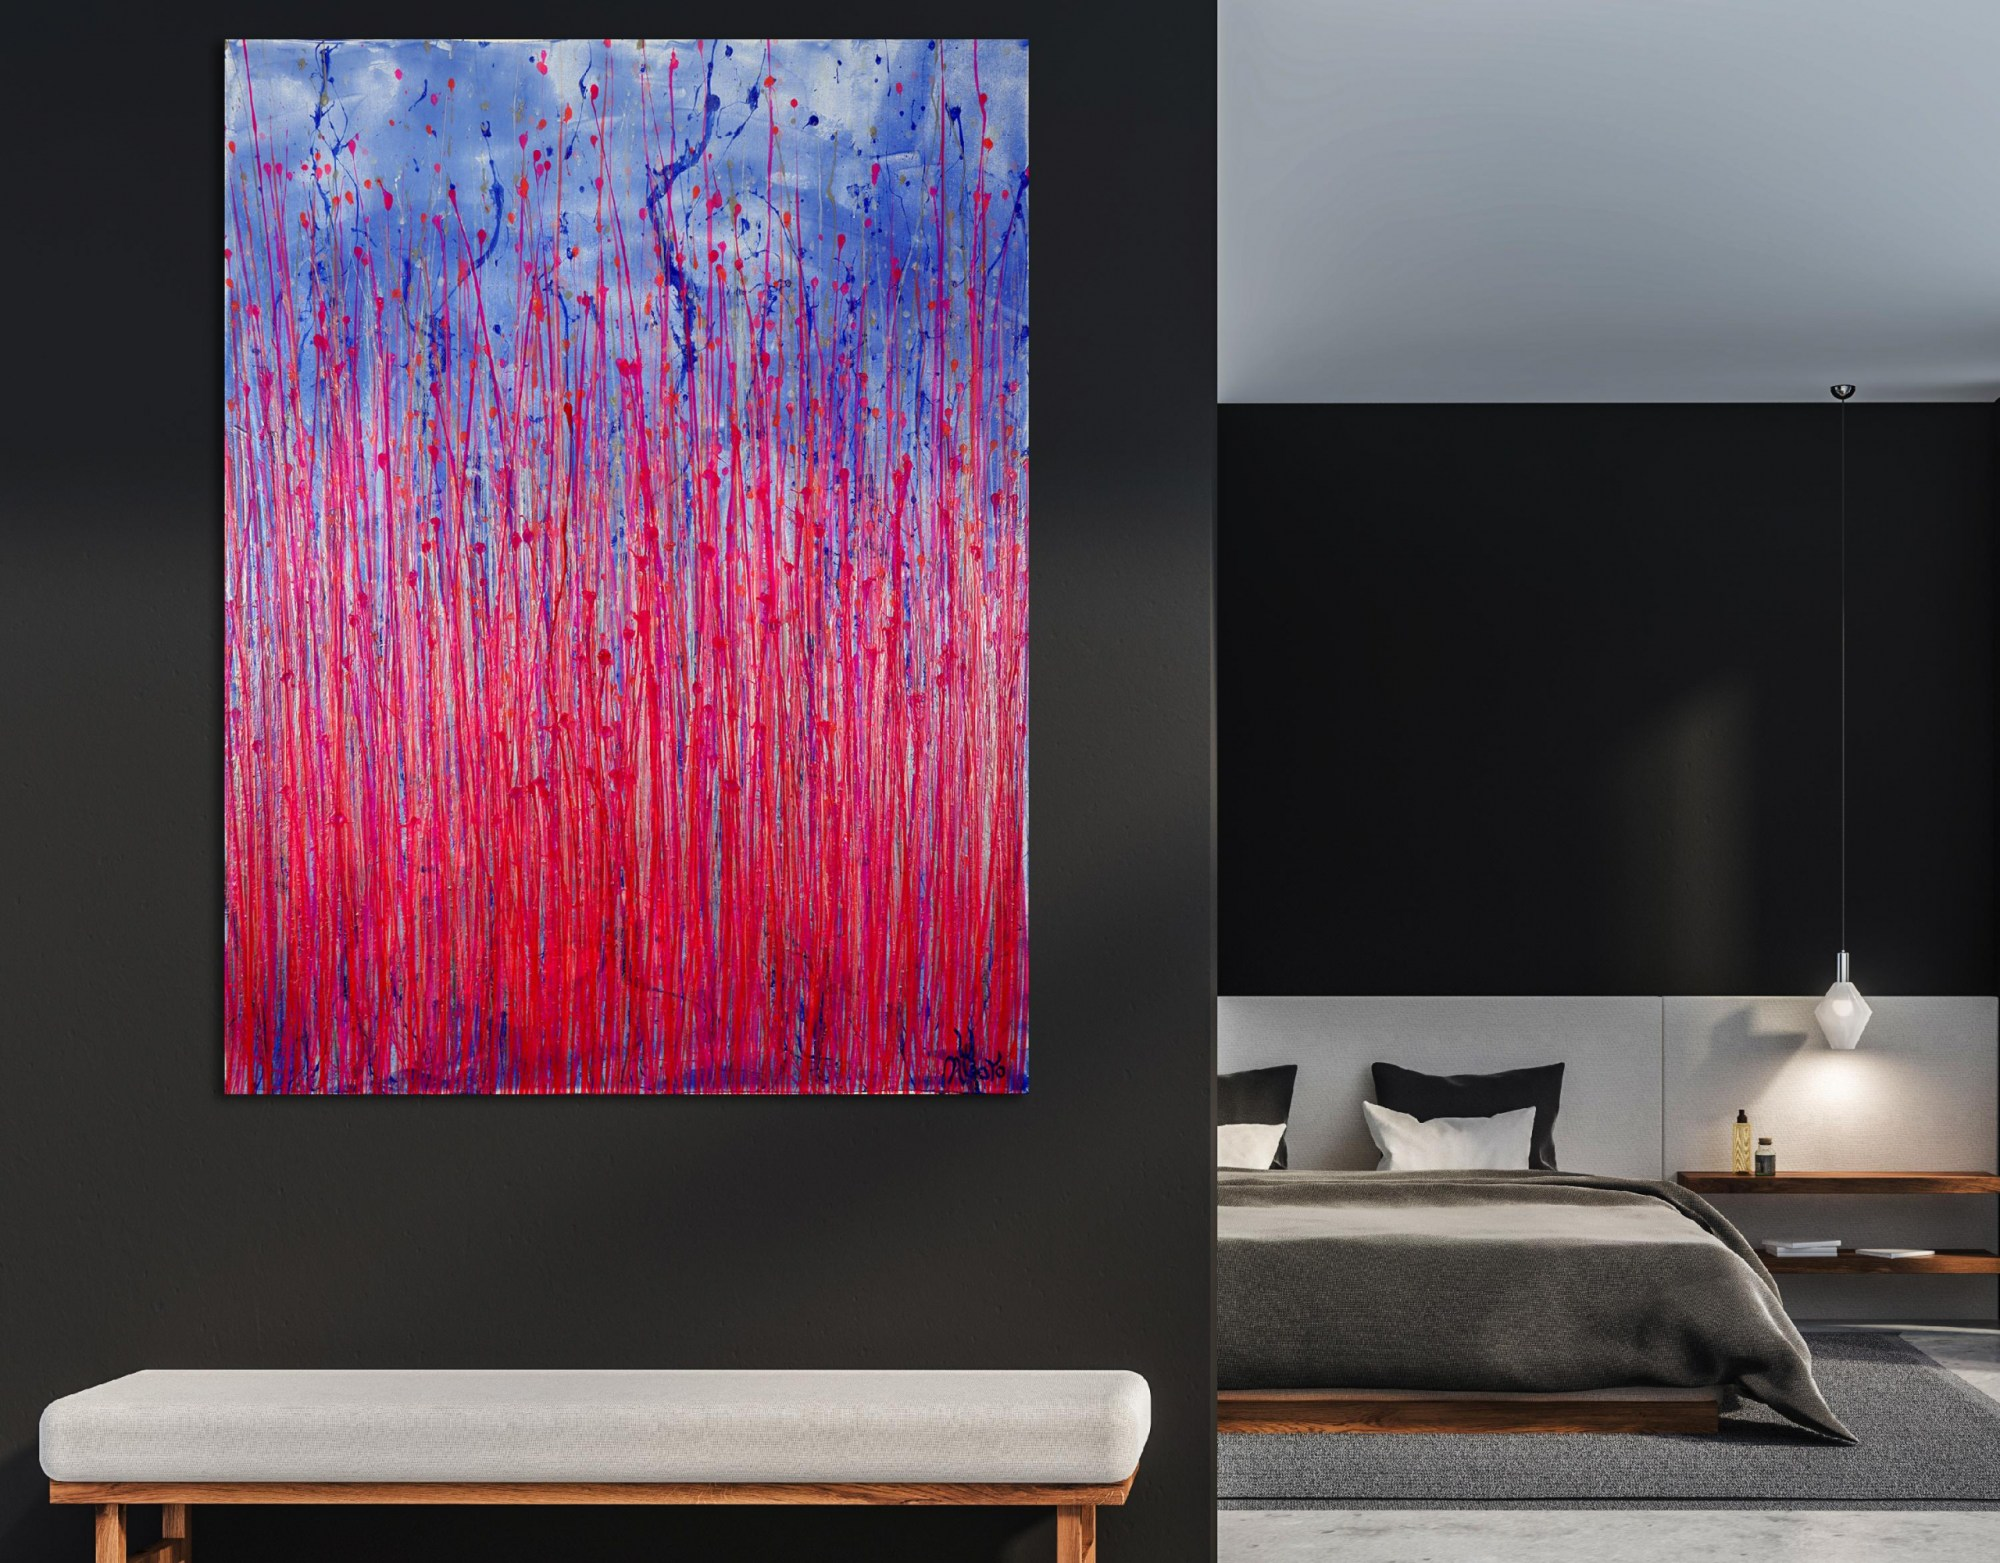 Room example / Pink Takeover (Over Silver Blue) 3 (2021) / 36x48 inches by Nestor Toro